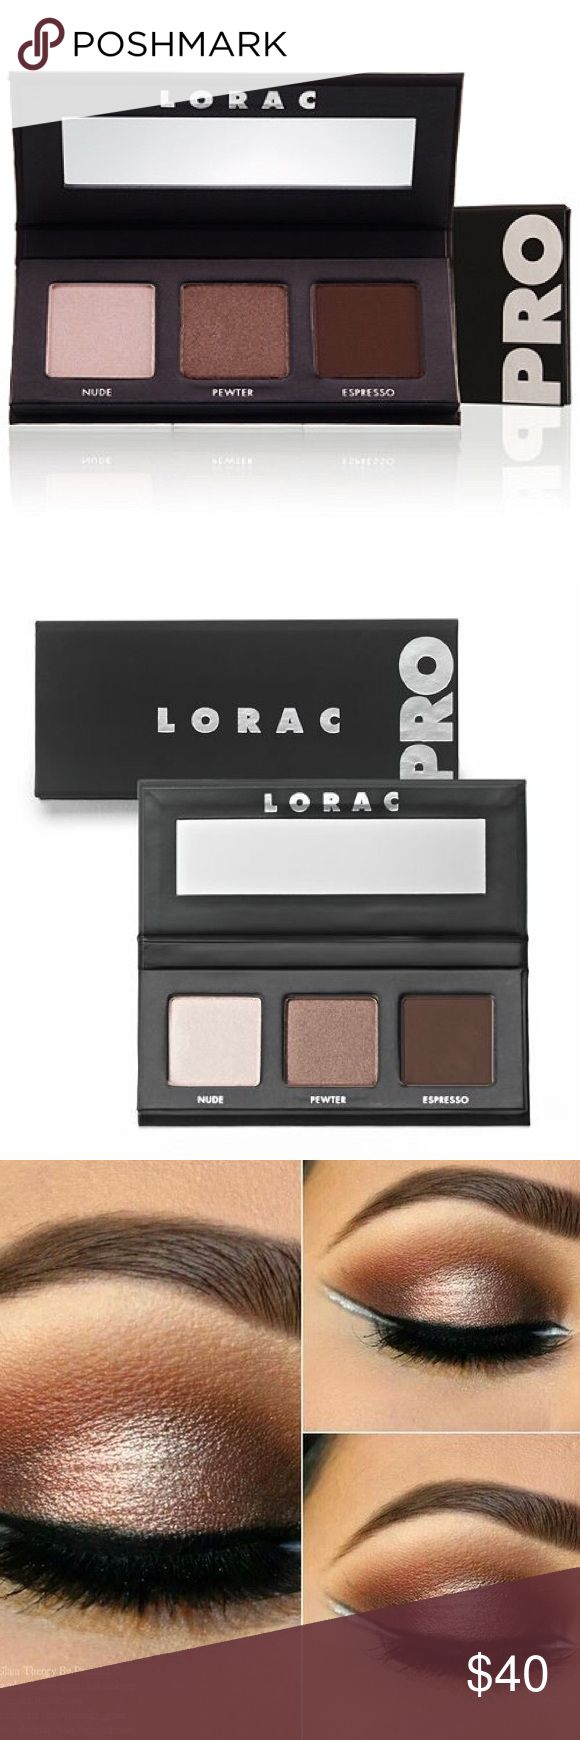 LORAC  PRO Palette PRO Palette - the perfect trio to keep your eyes looking glamorous on the go. LORAC's velvety-smooth eye shadows are ultra-pigmented and packed with long-lasting PRO power so you can easily shade, shadow, line and define, just like a PRO! Shades From Left to Right: Nude (shimmer), Pewter (shimmer), Espresso (matte).   A $57 value! Makeup Eyeshadow